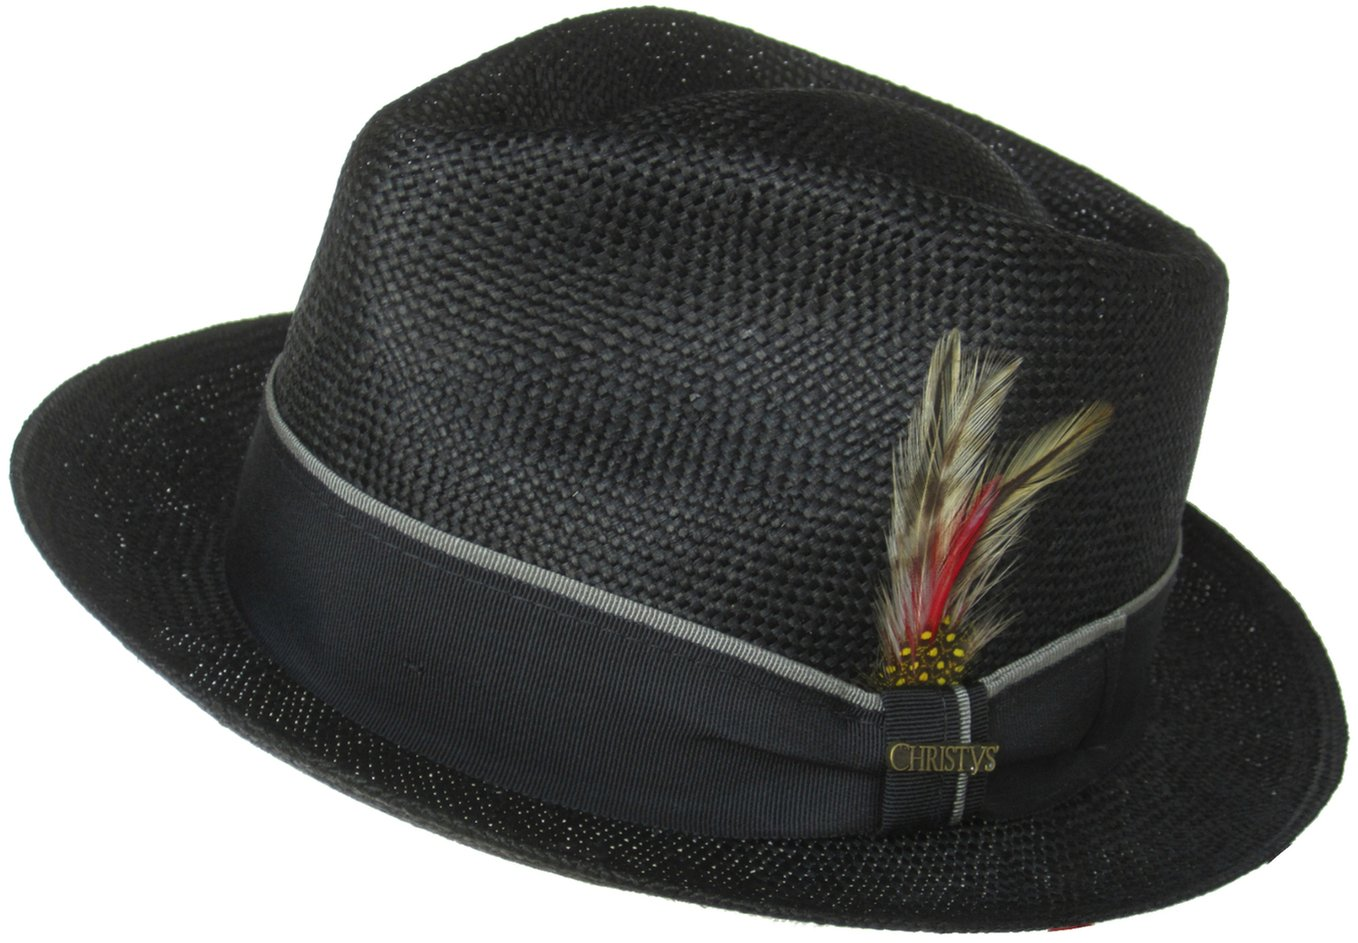 Christys Made in USA Bao Straw Fedora (Black, XL)